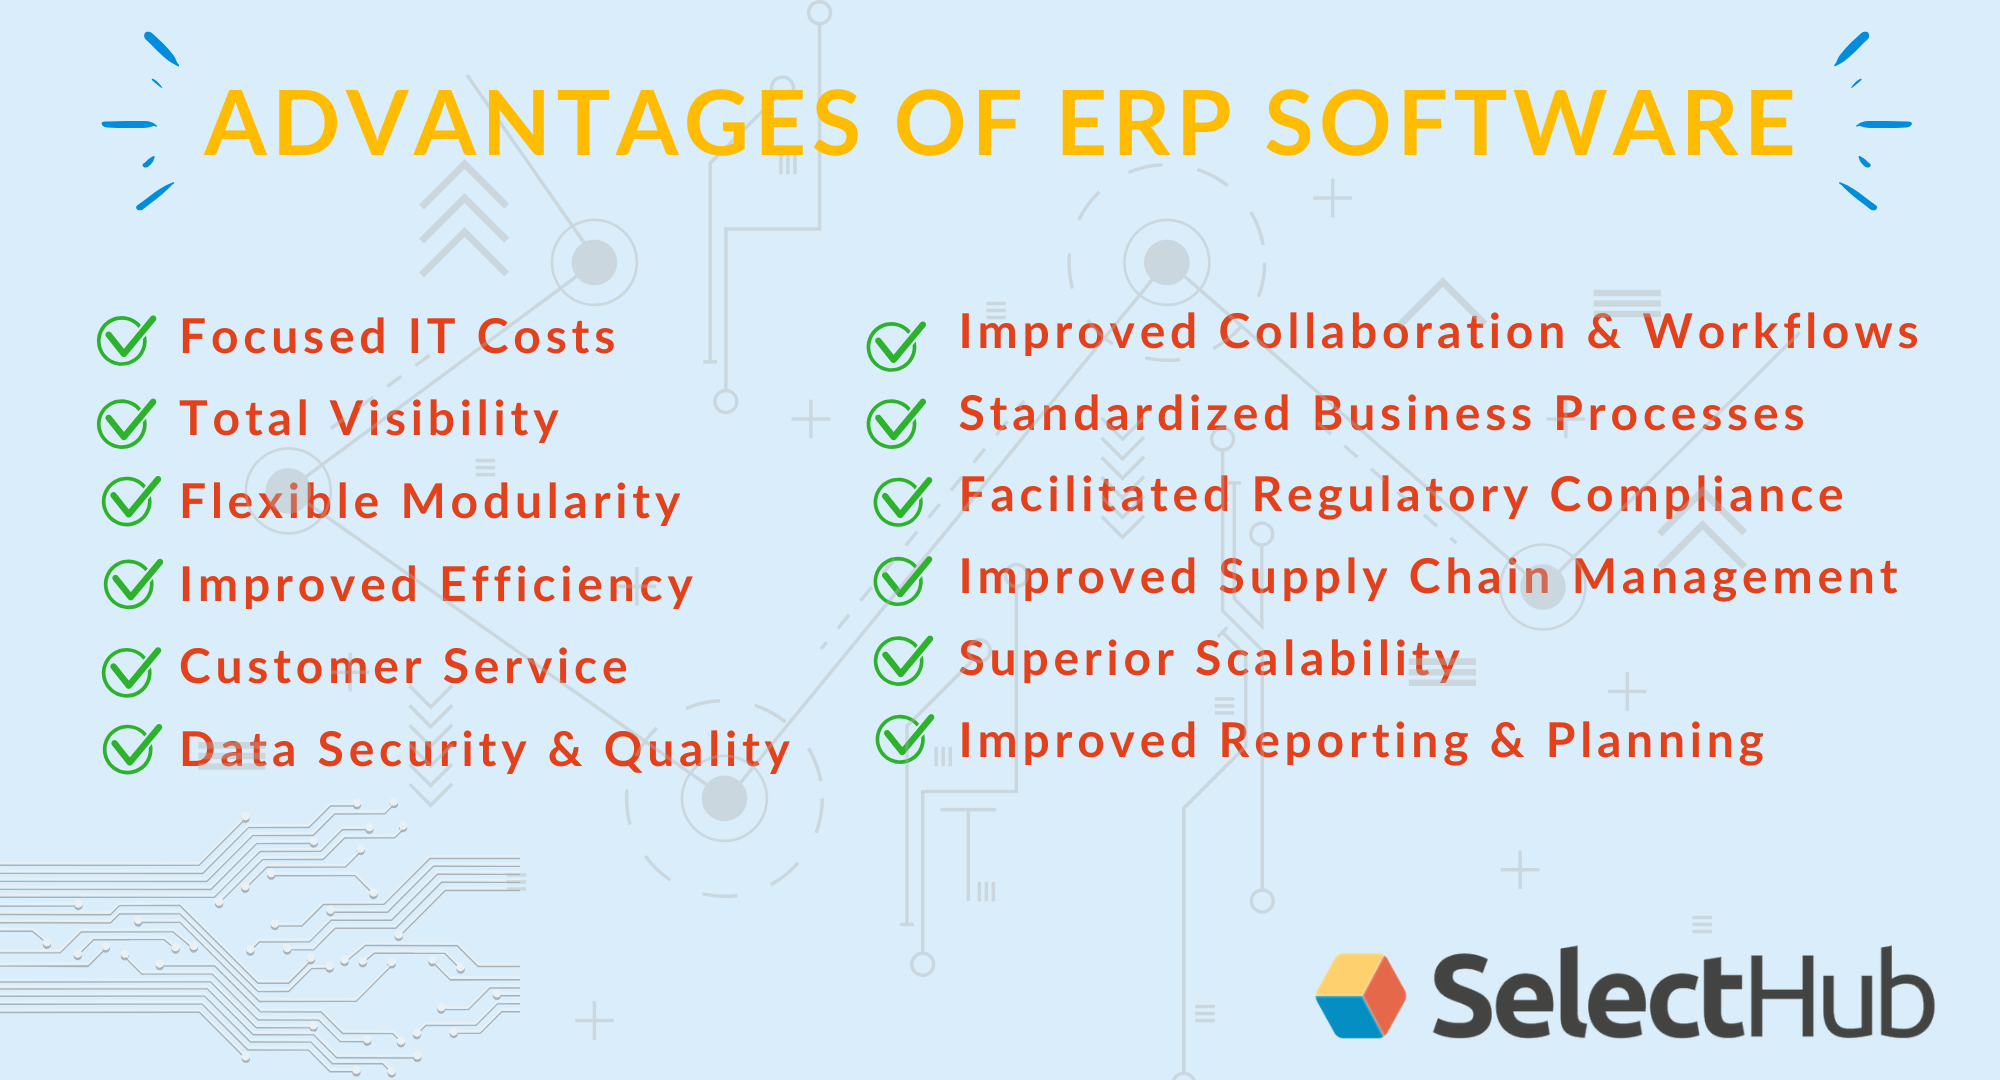 Benefits Of Erp Advantages And Disadvantages Of An Enterprise Resource Planning System Business Process Supply Chain Management Data Security